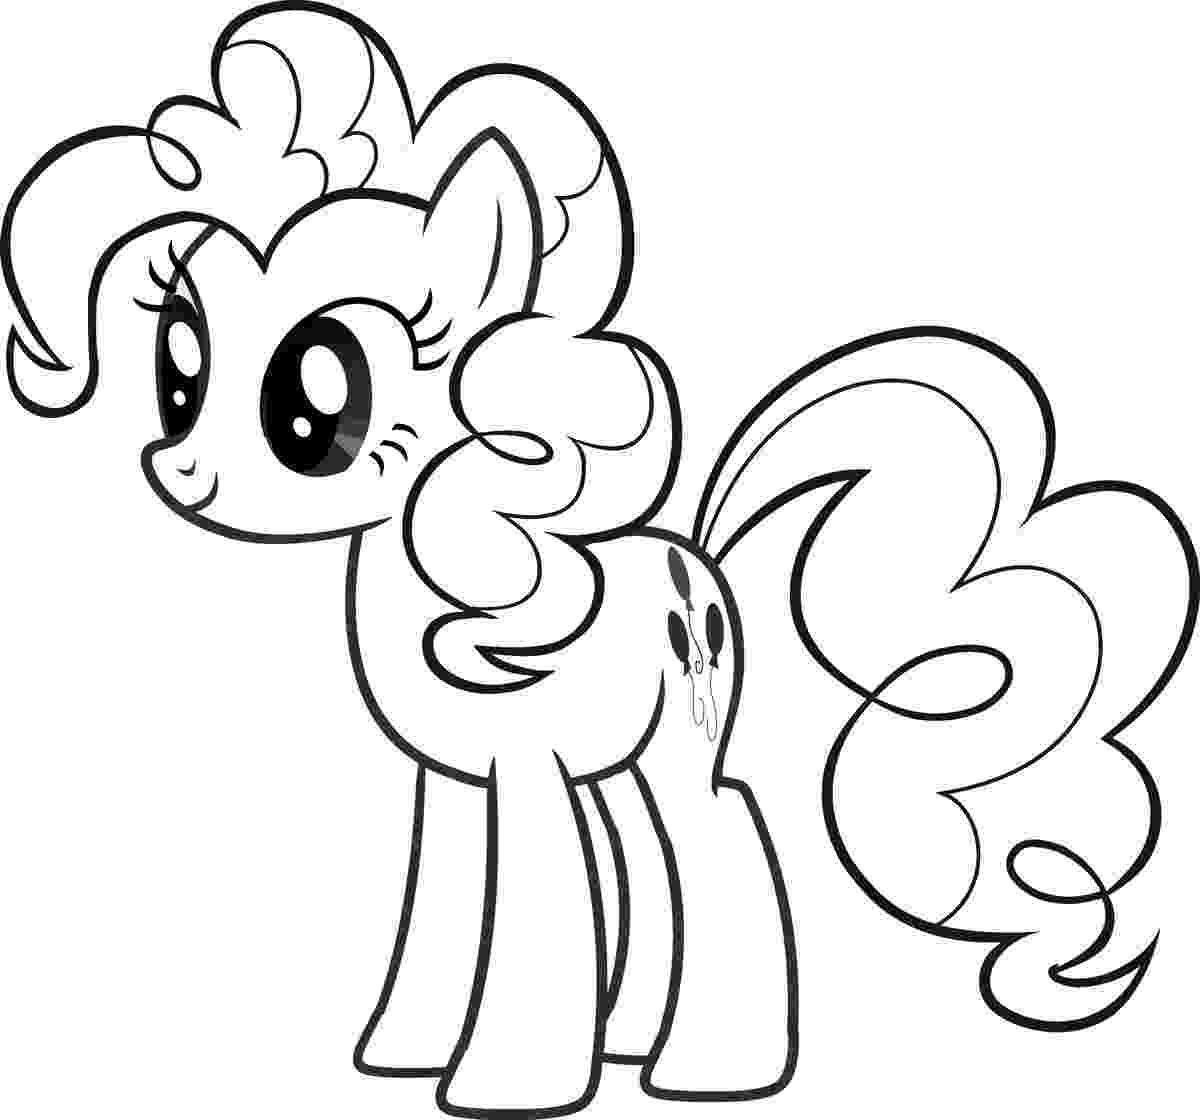 my little pony colouring pictures to print 1000 images about my little pony on pinterest colouring pictures to my pony little print